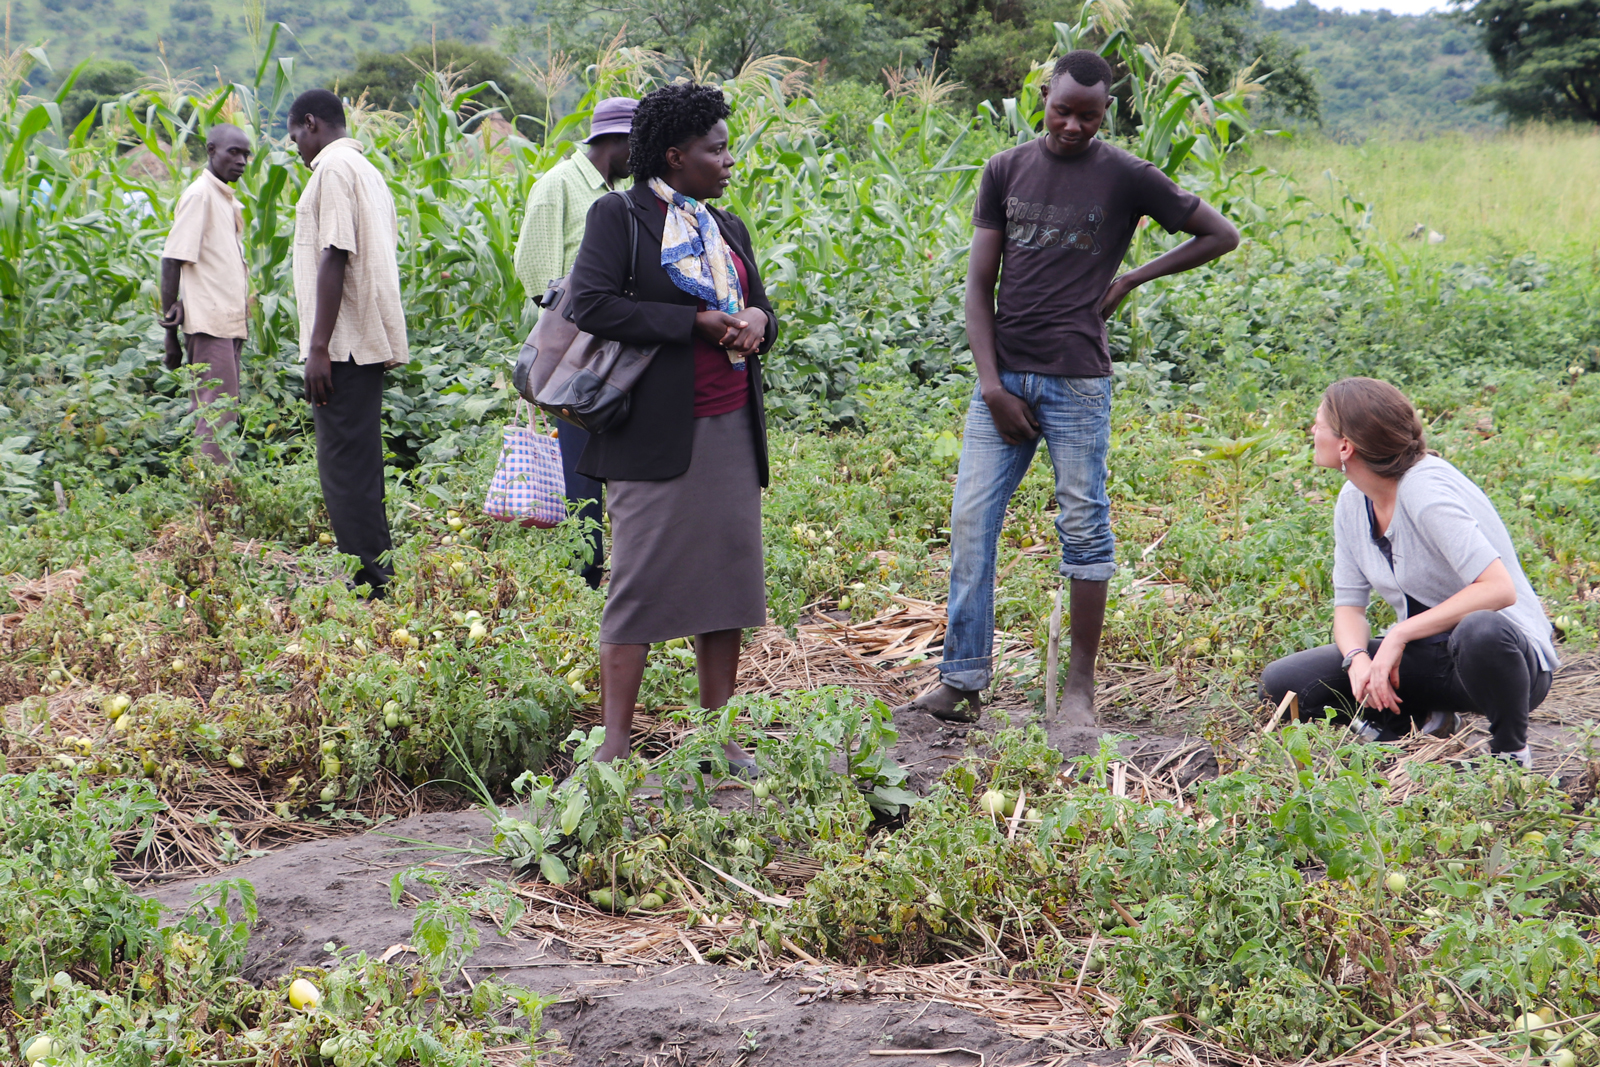 Farmer, social worker and scientist discuss innovation at a farm in Uganda